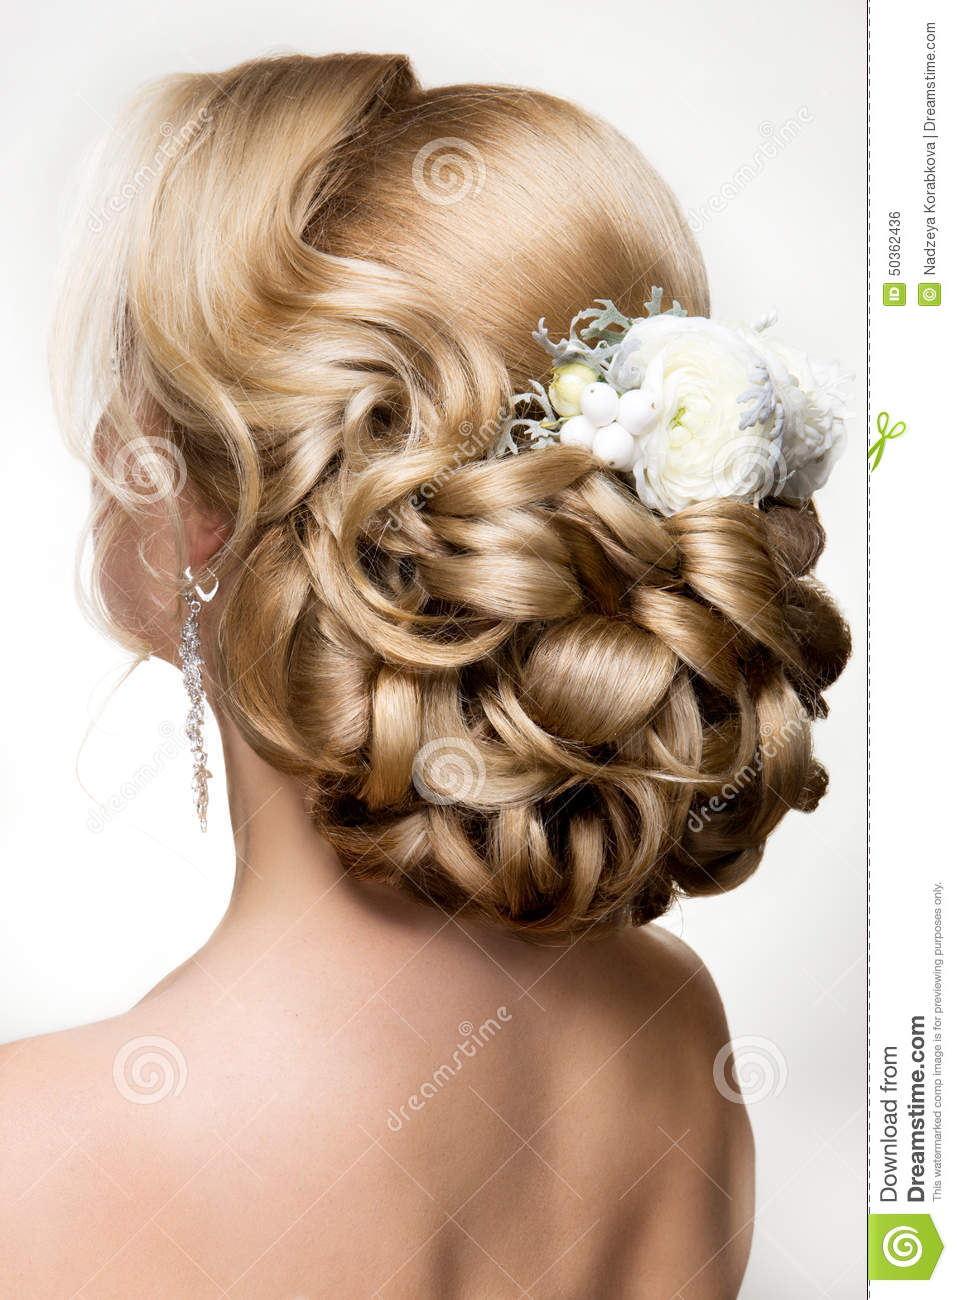 Beautiful Woman With Gold MakeupBeautiful Bride With